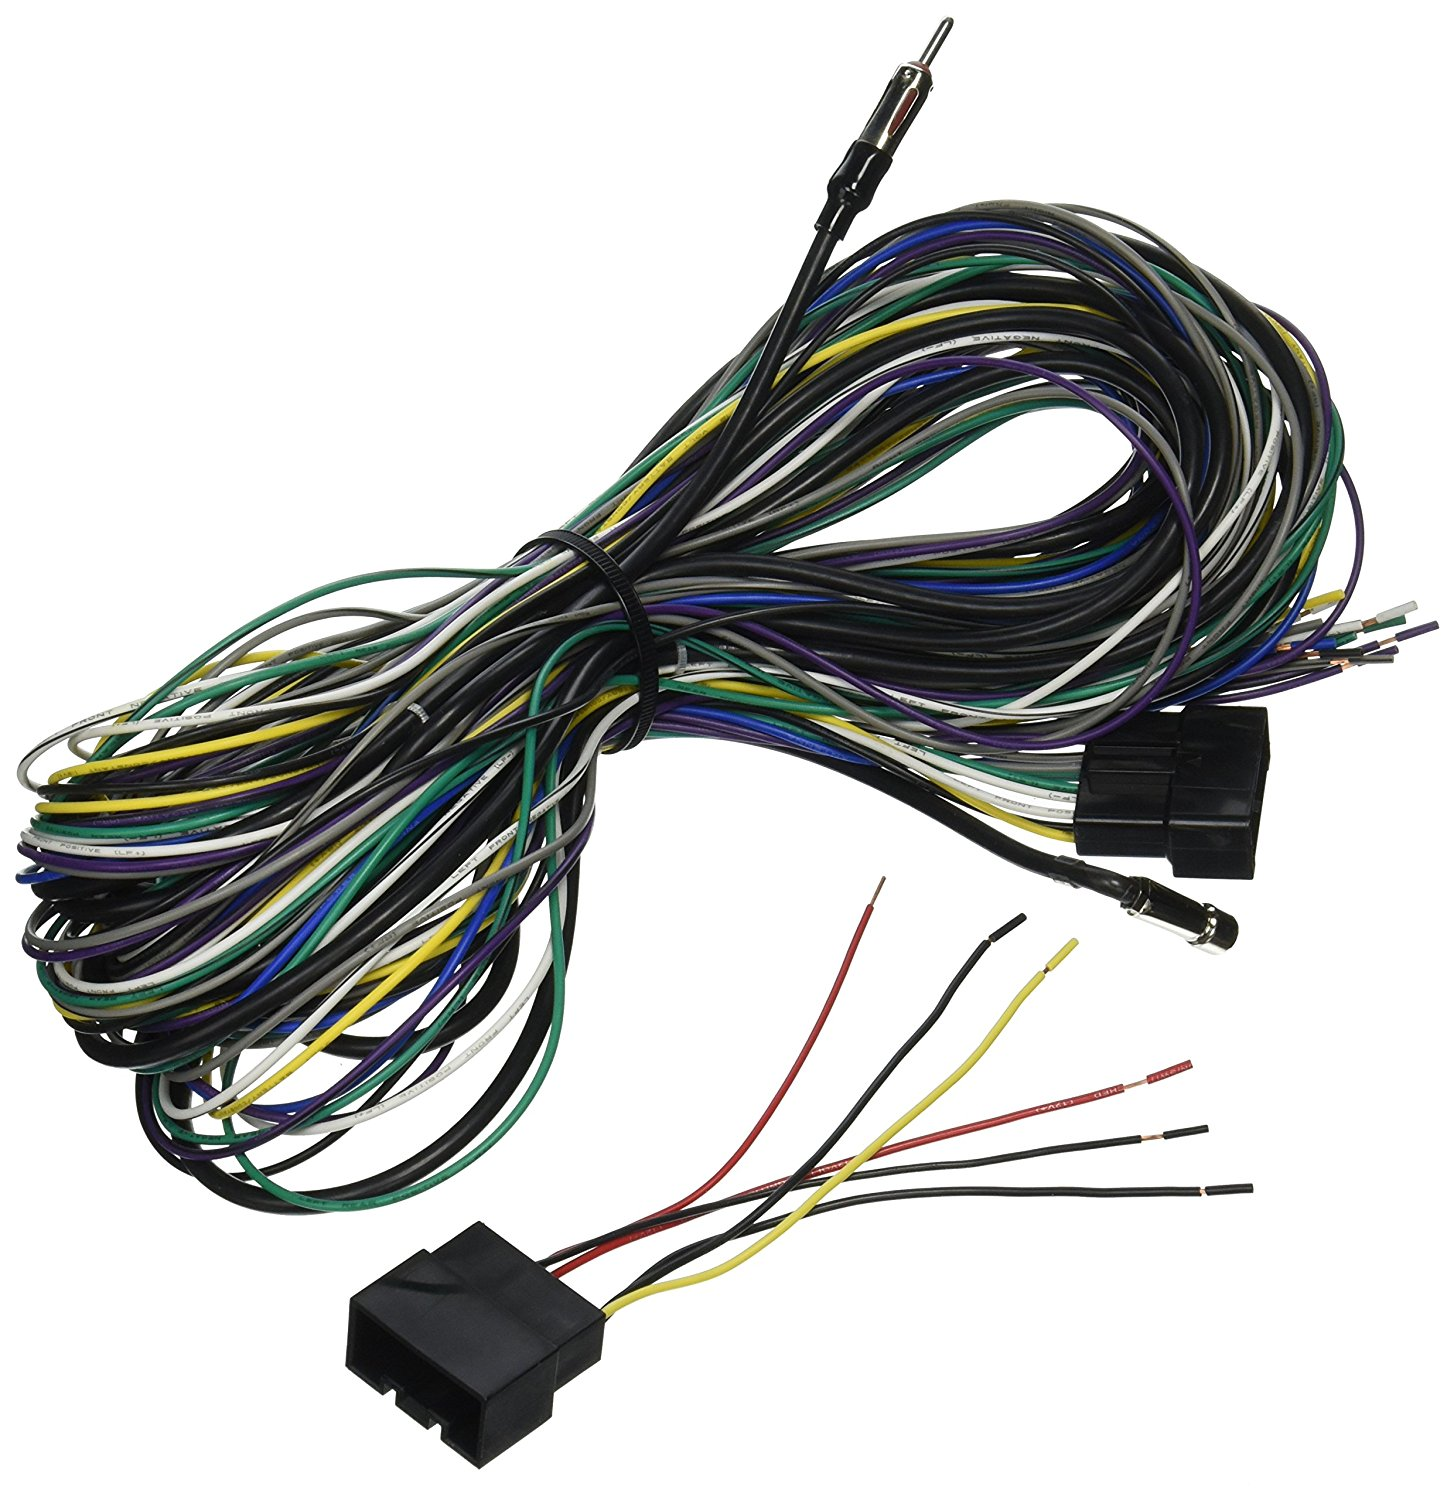 hight resolution of get quotations scosche radio wiring harness for 1998 up ford taurus mecury sable power speaker